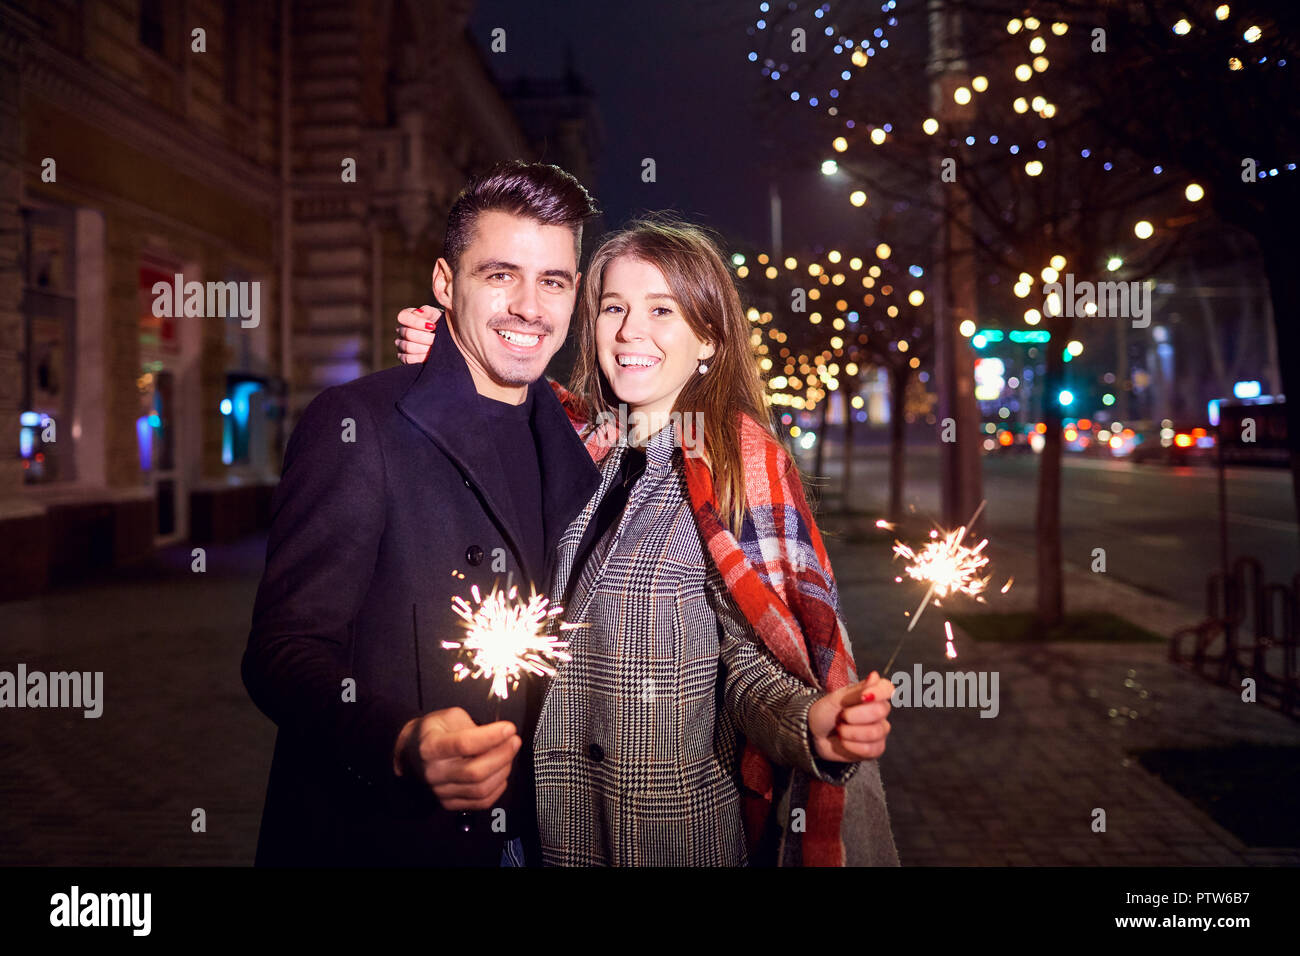 A young couple with sparklers in the hands at Christmas. - Stock Image